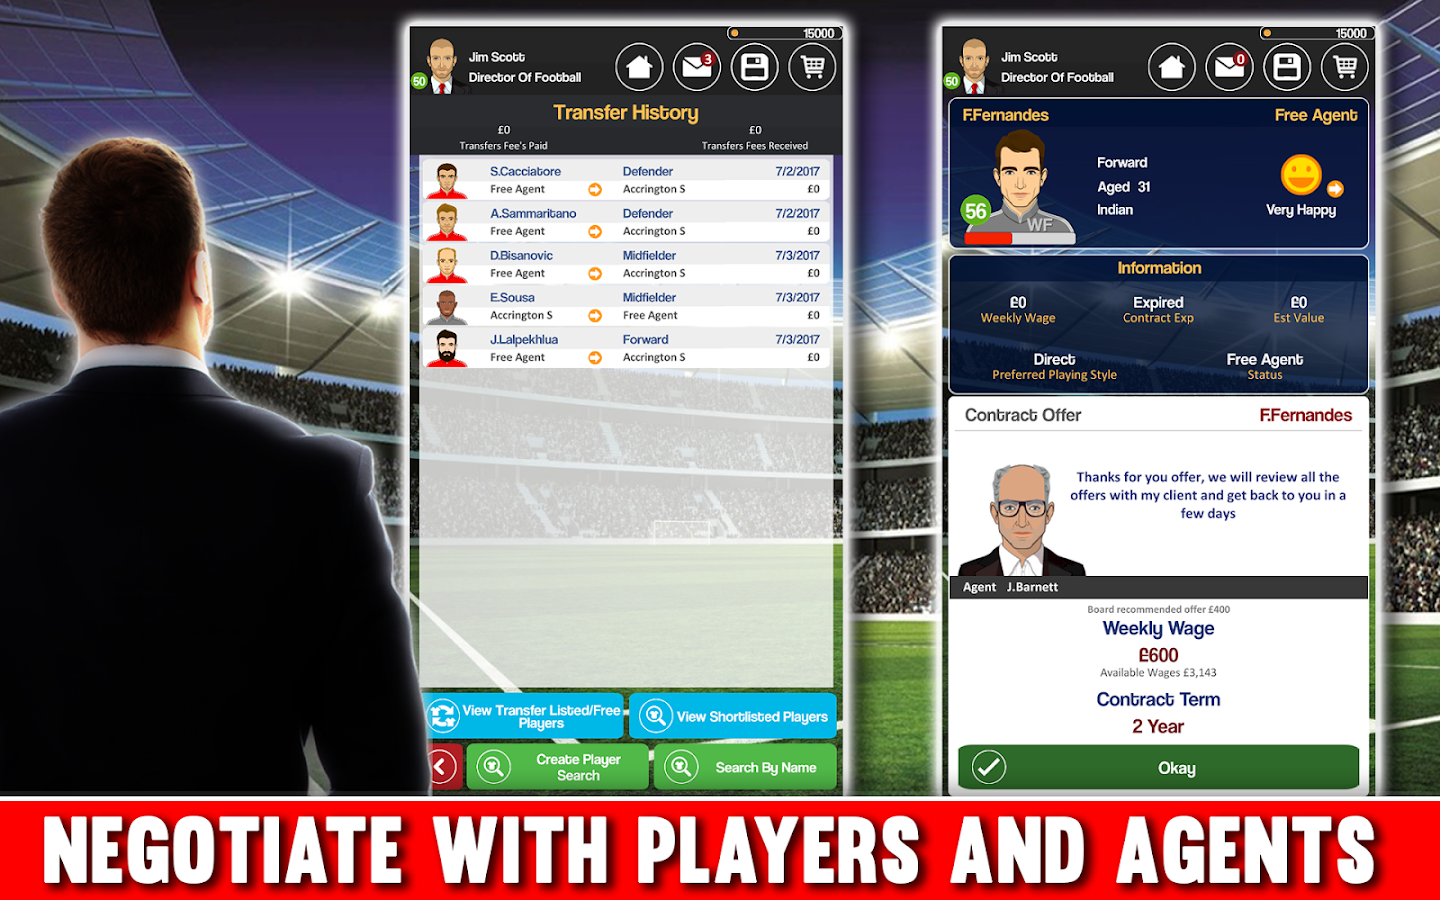 Club Soccer Director - Soccer Club Manager Sim Screenshot 9